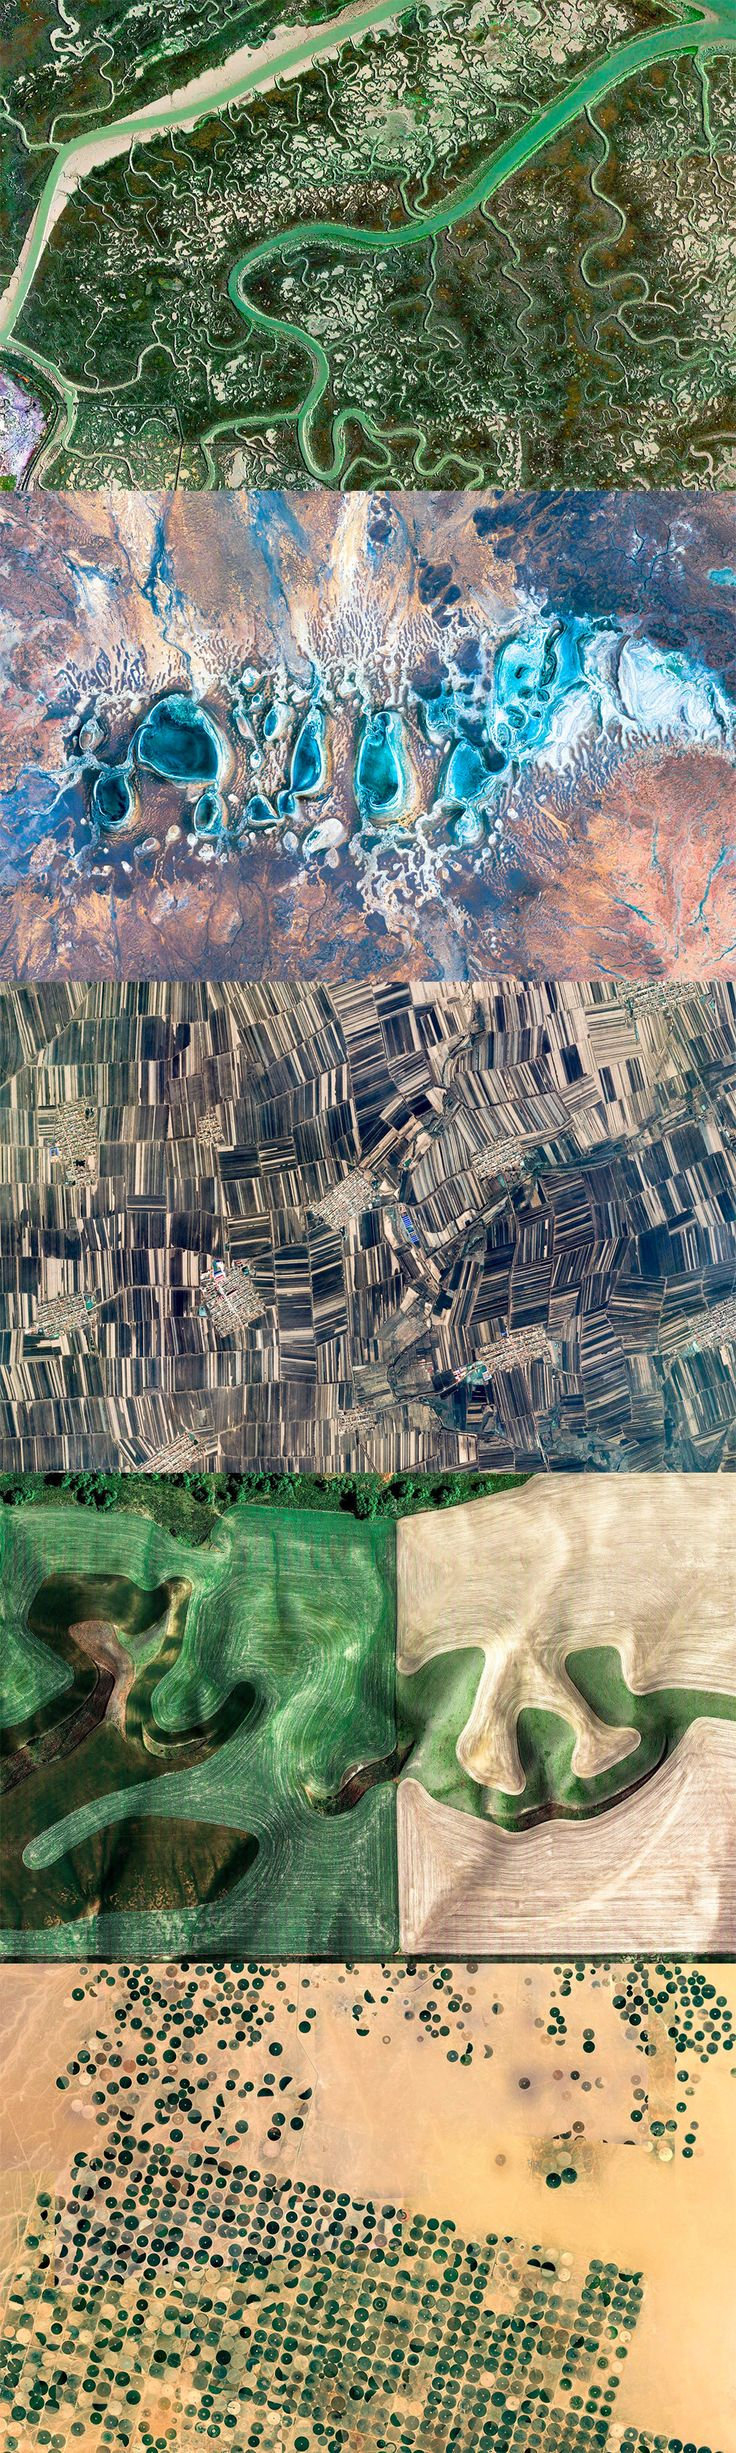 Earth View: A Curated Selection of the Most Striking Satellite Images Found on Google Earth